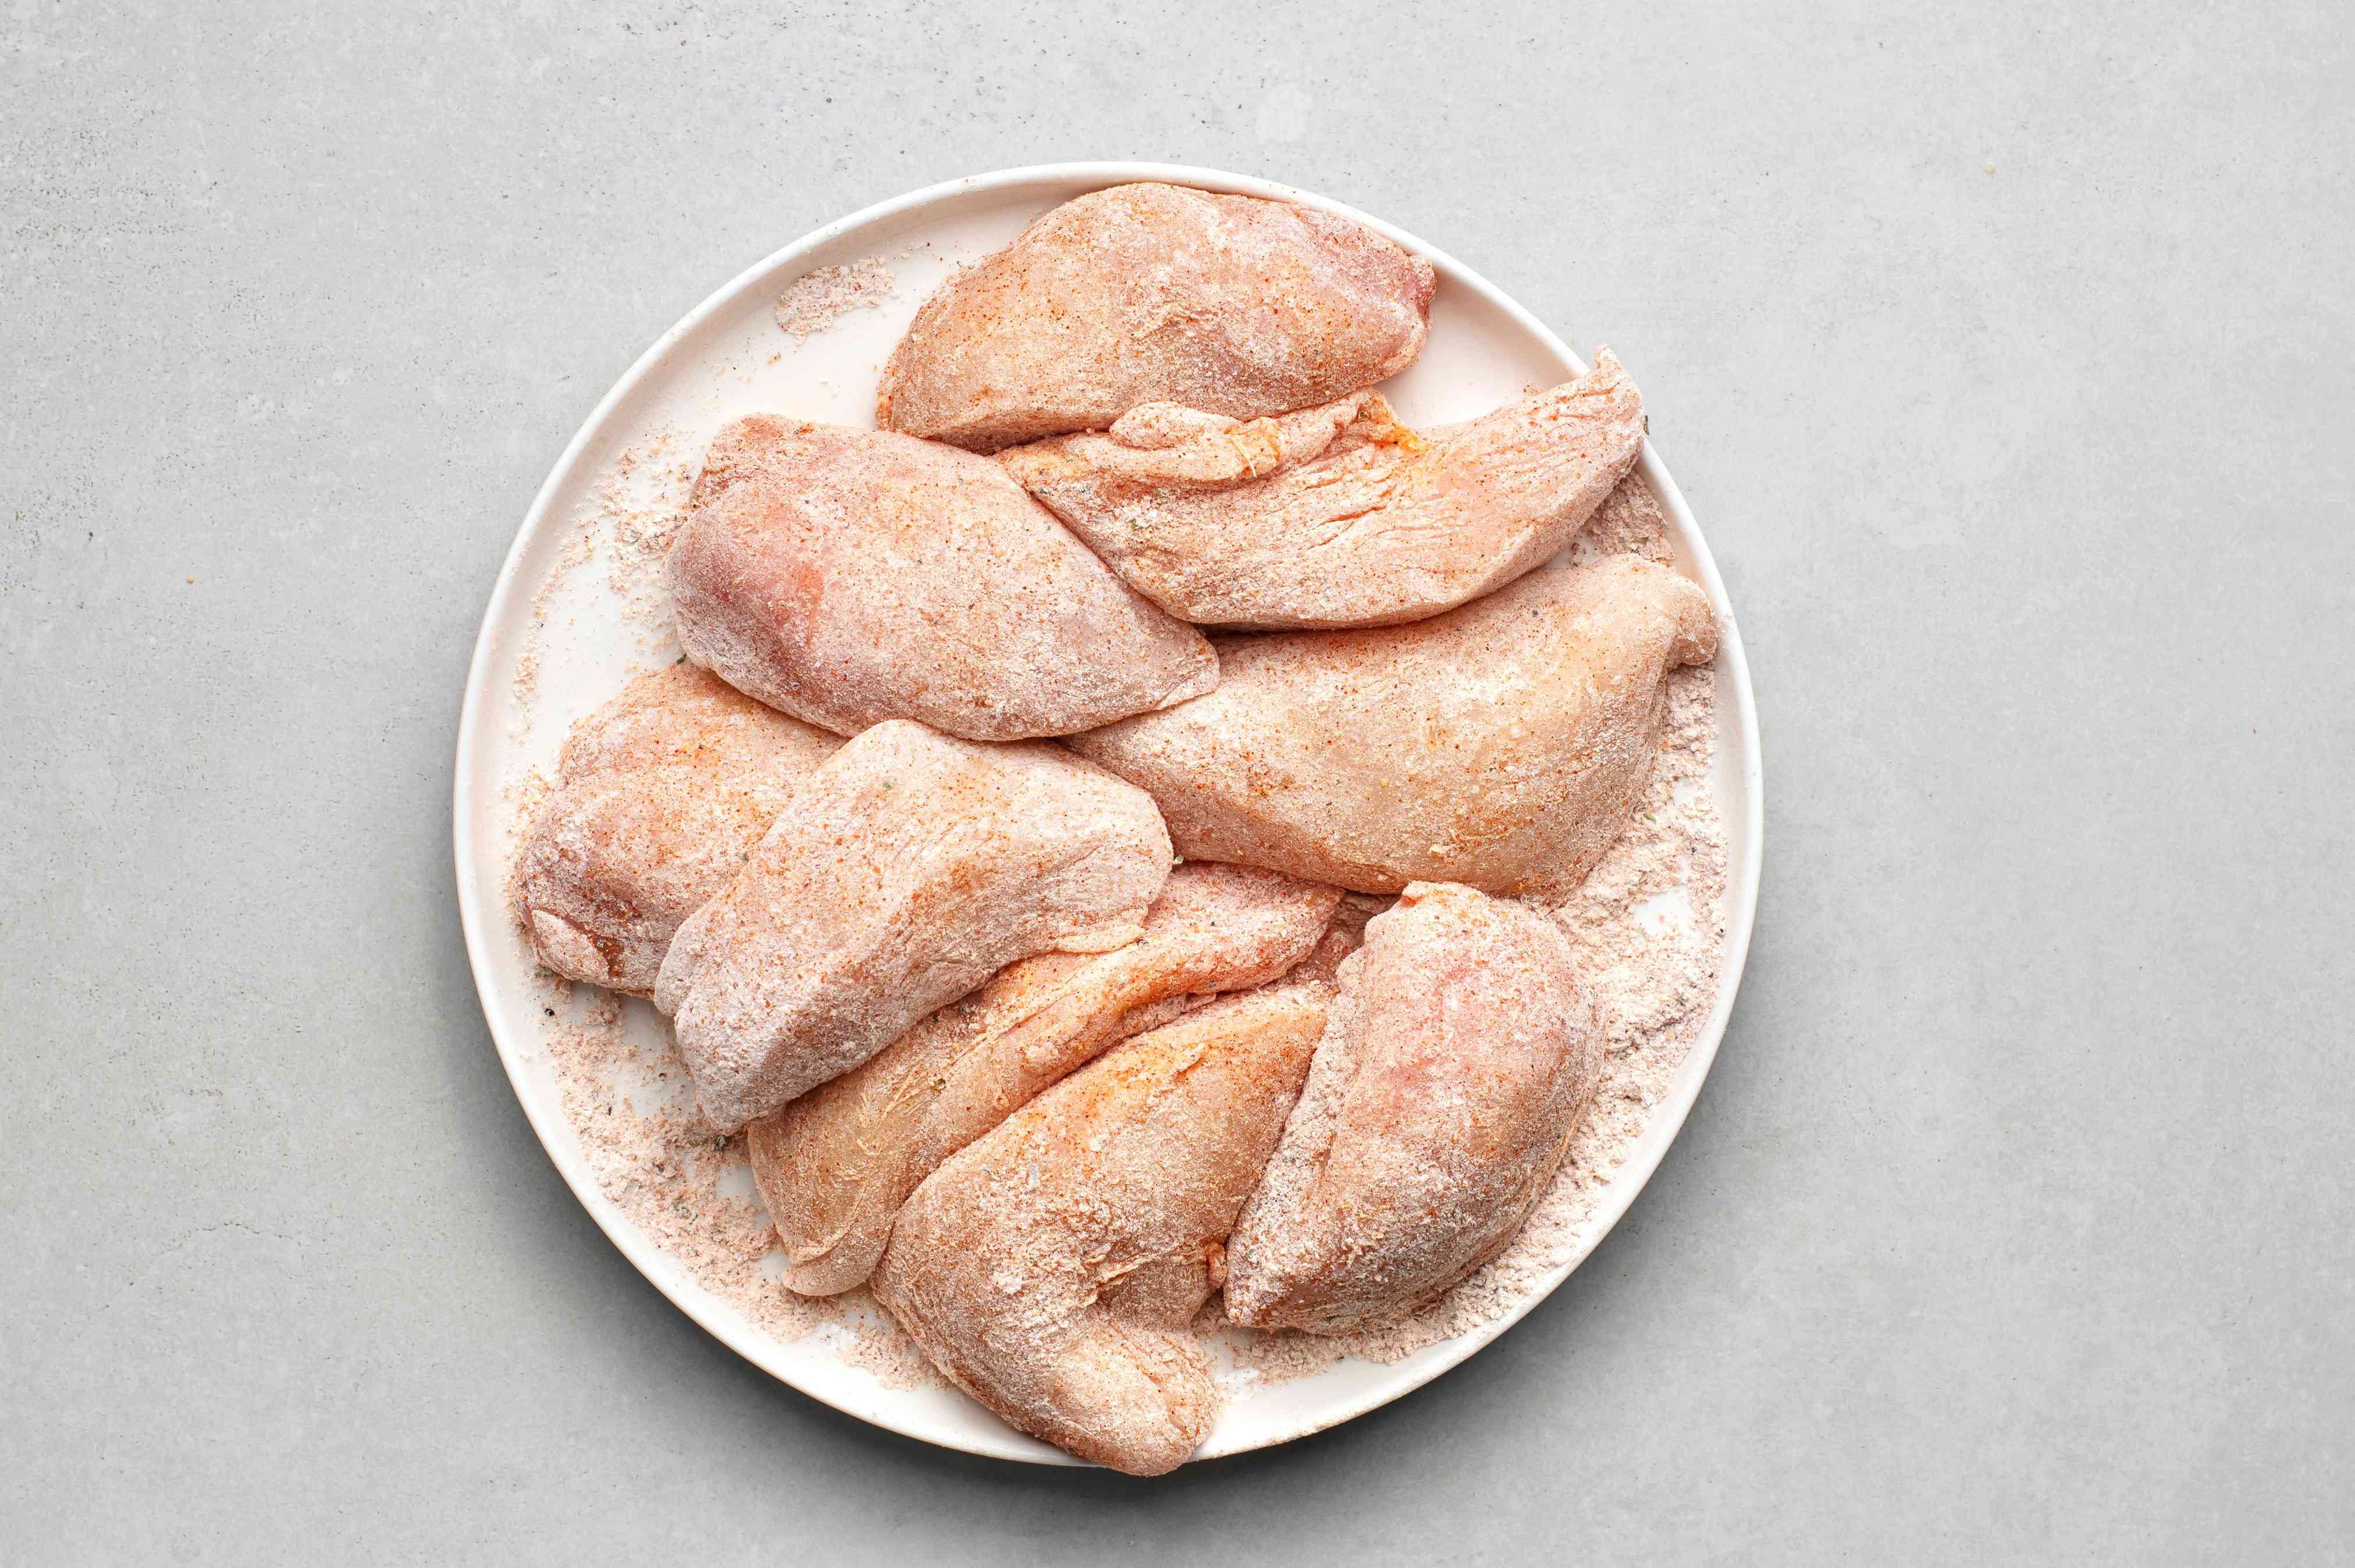 coat chicken in the flour and seasoning mixture